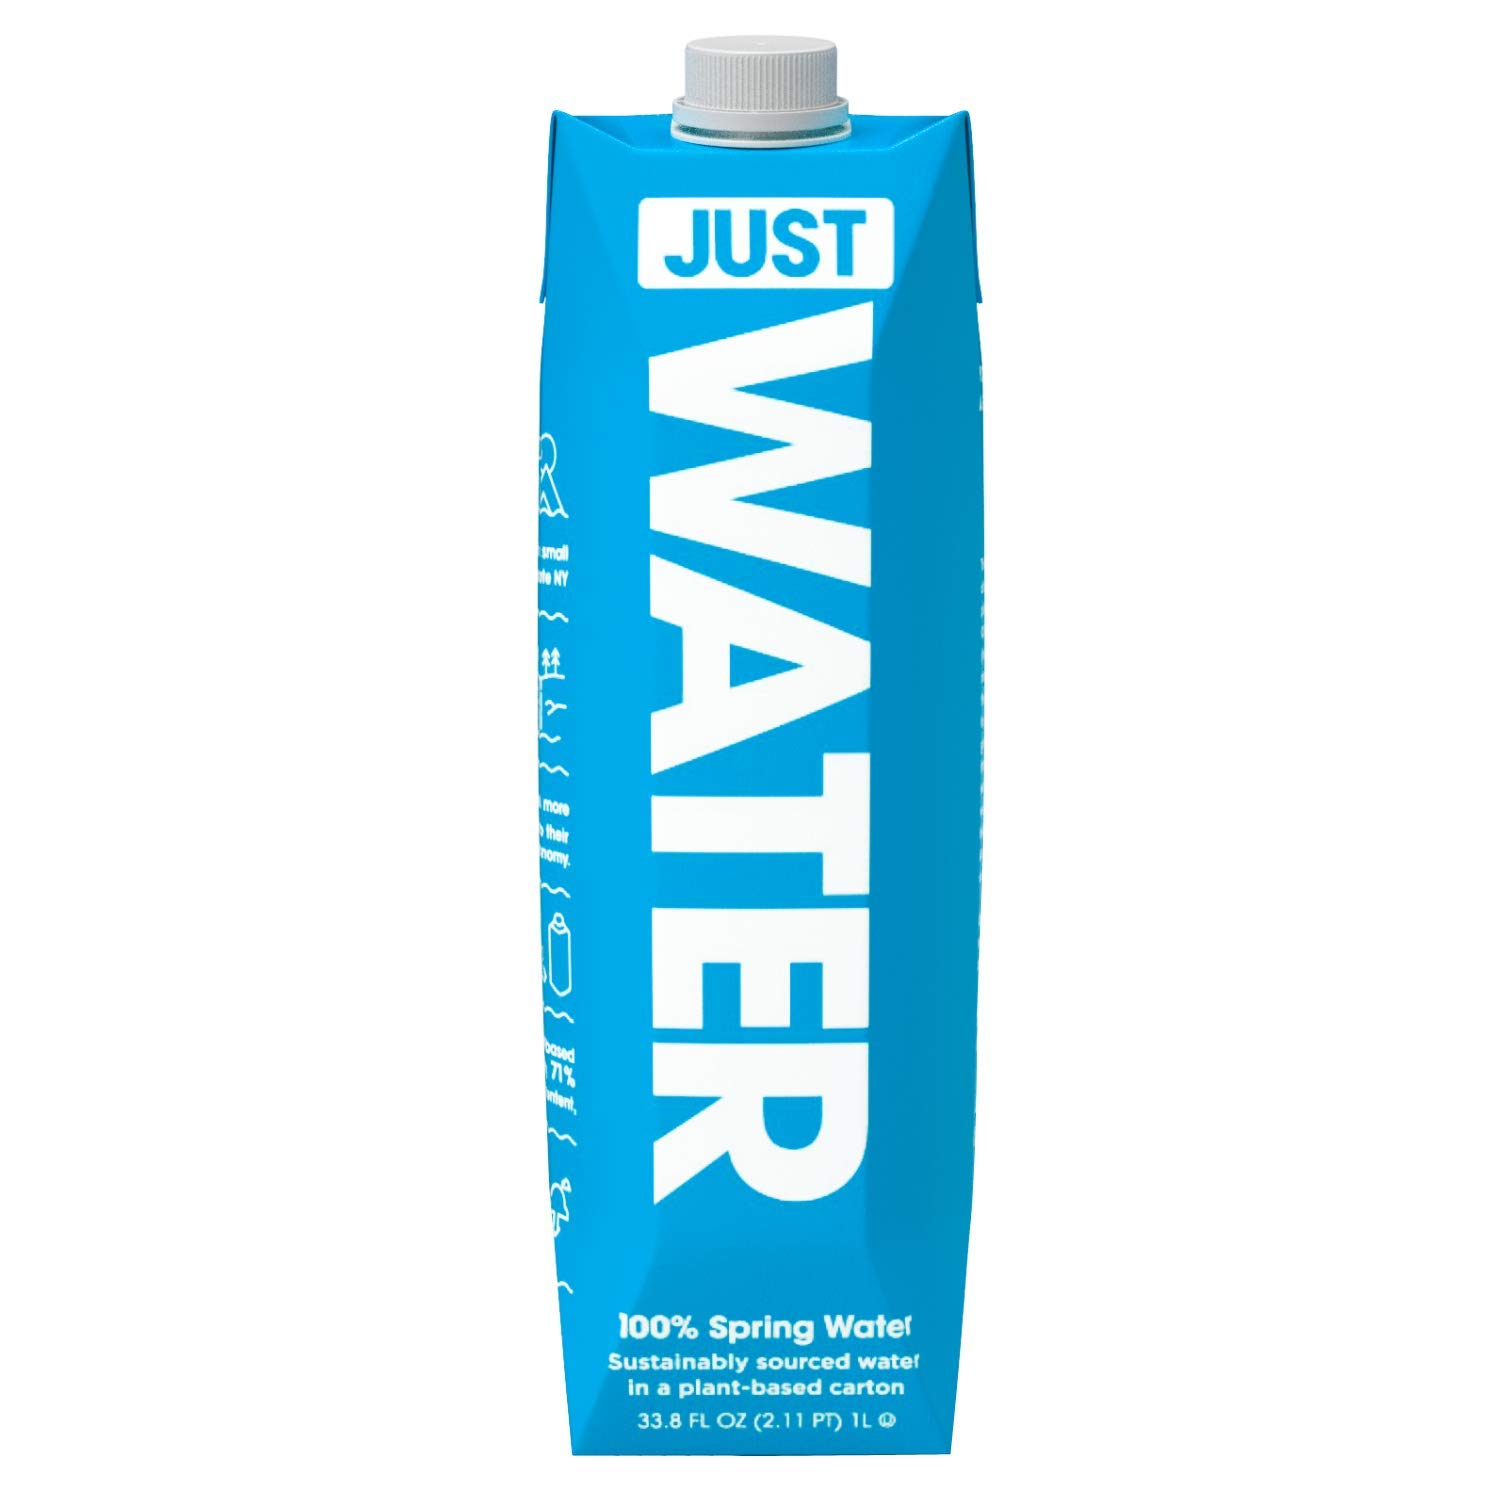 JUST Water, Premium Pure Still Spring Water in an Eco-Friendly BPA Free Plant-Based Bottle | Naturally Alkaline, High 8.0 pH | Fully Recyclable Boxed Water Carton, 1 L / 33.8 oz (Pack of 12)